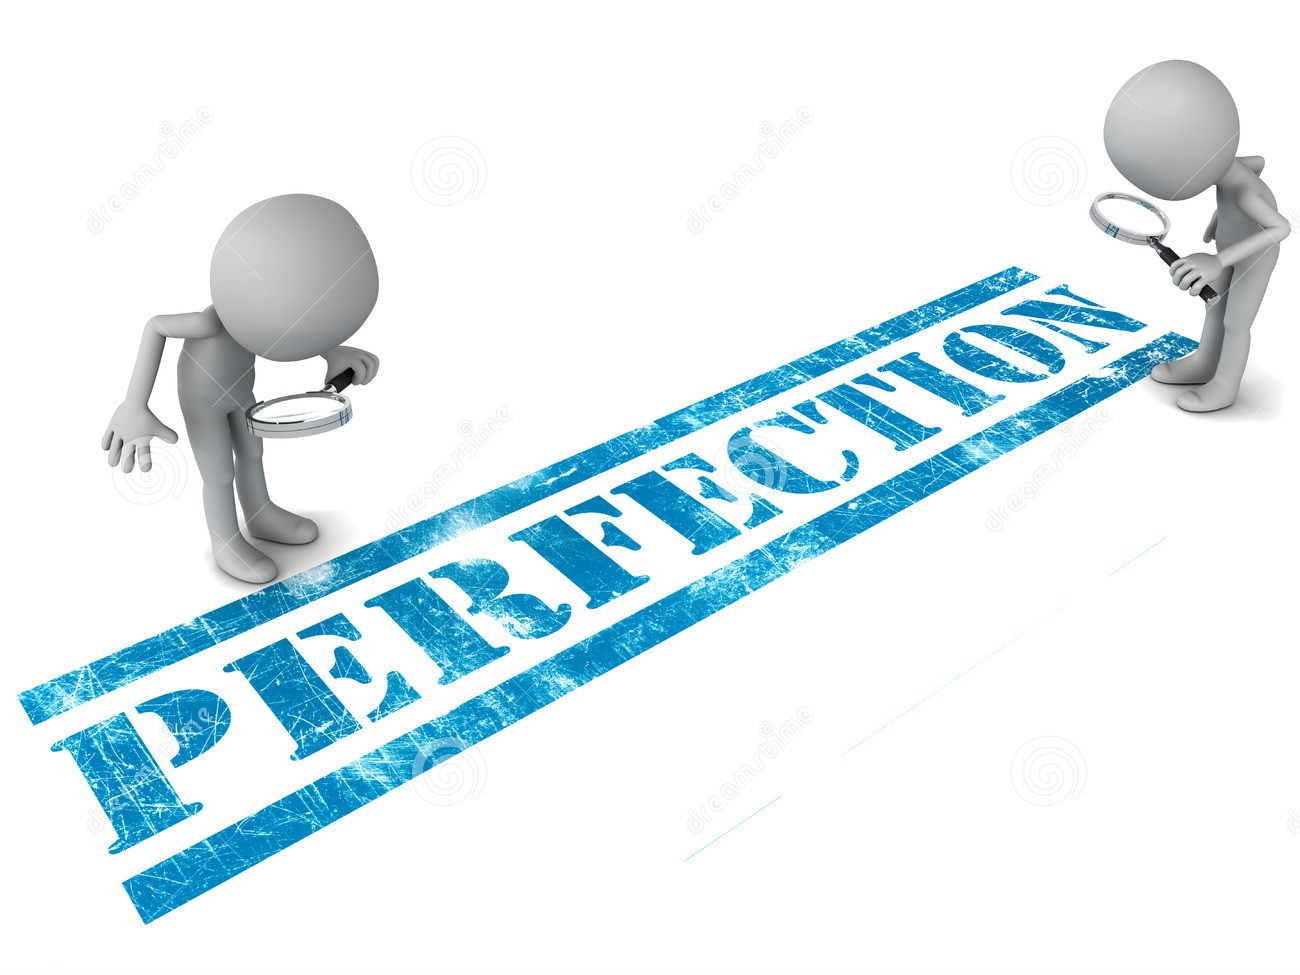 the ones who work towards perfection naturally inspire perfection in